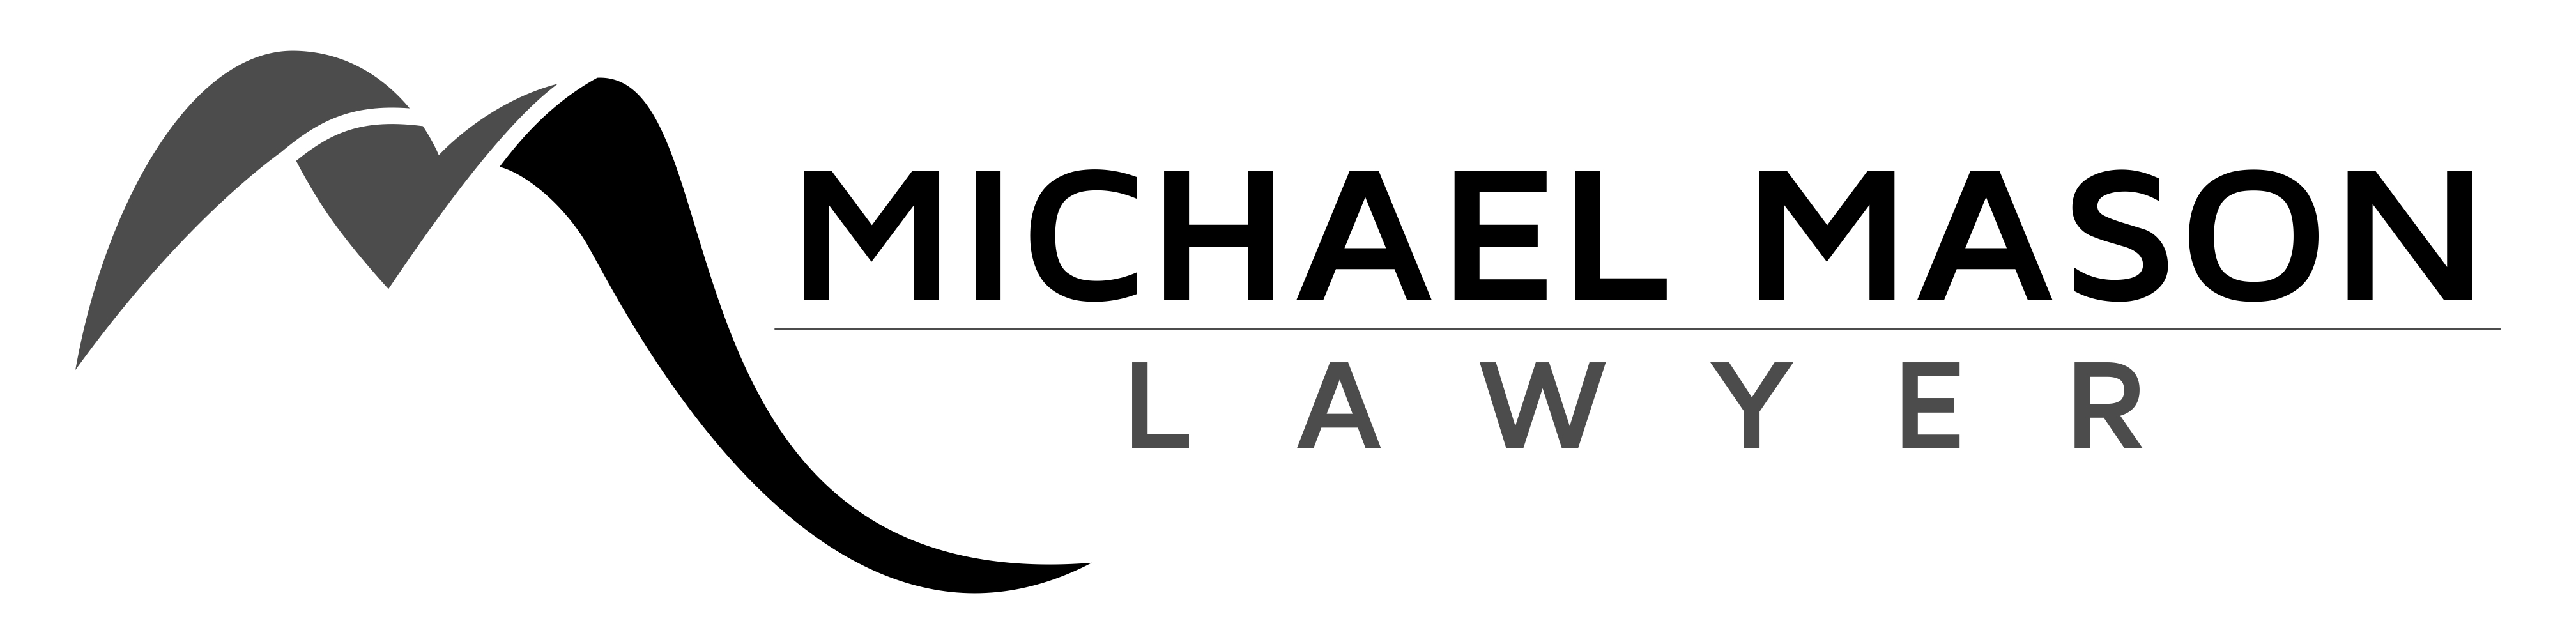 michael-mason-lawyer-logo